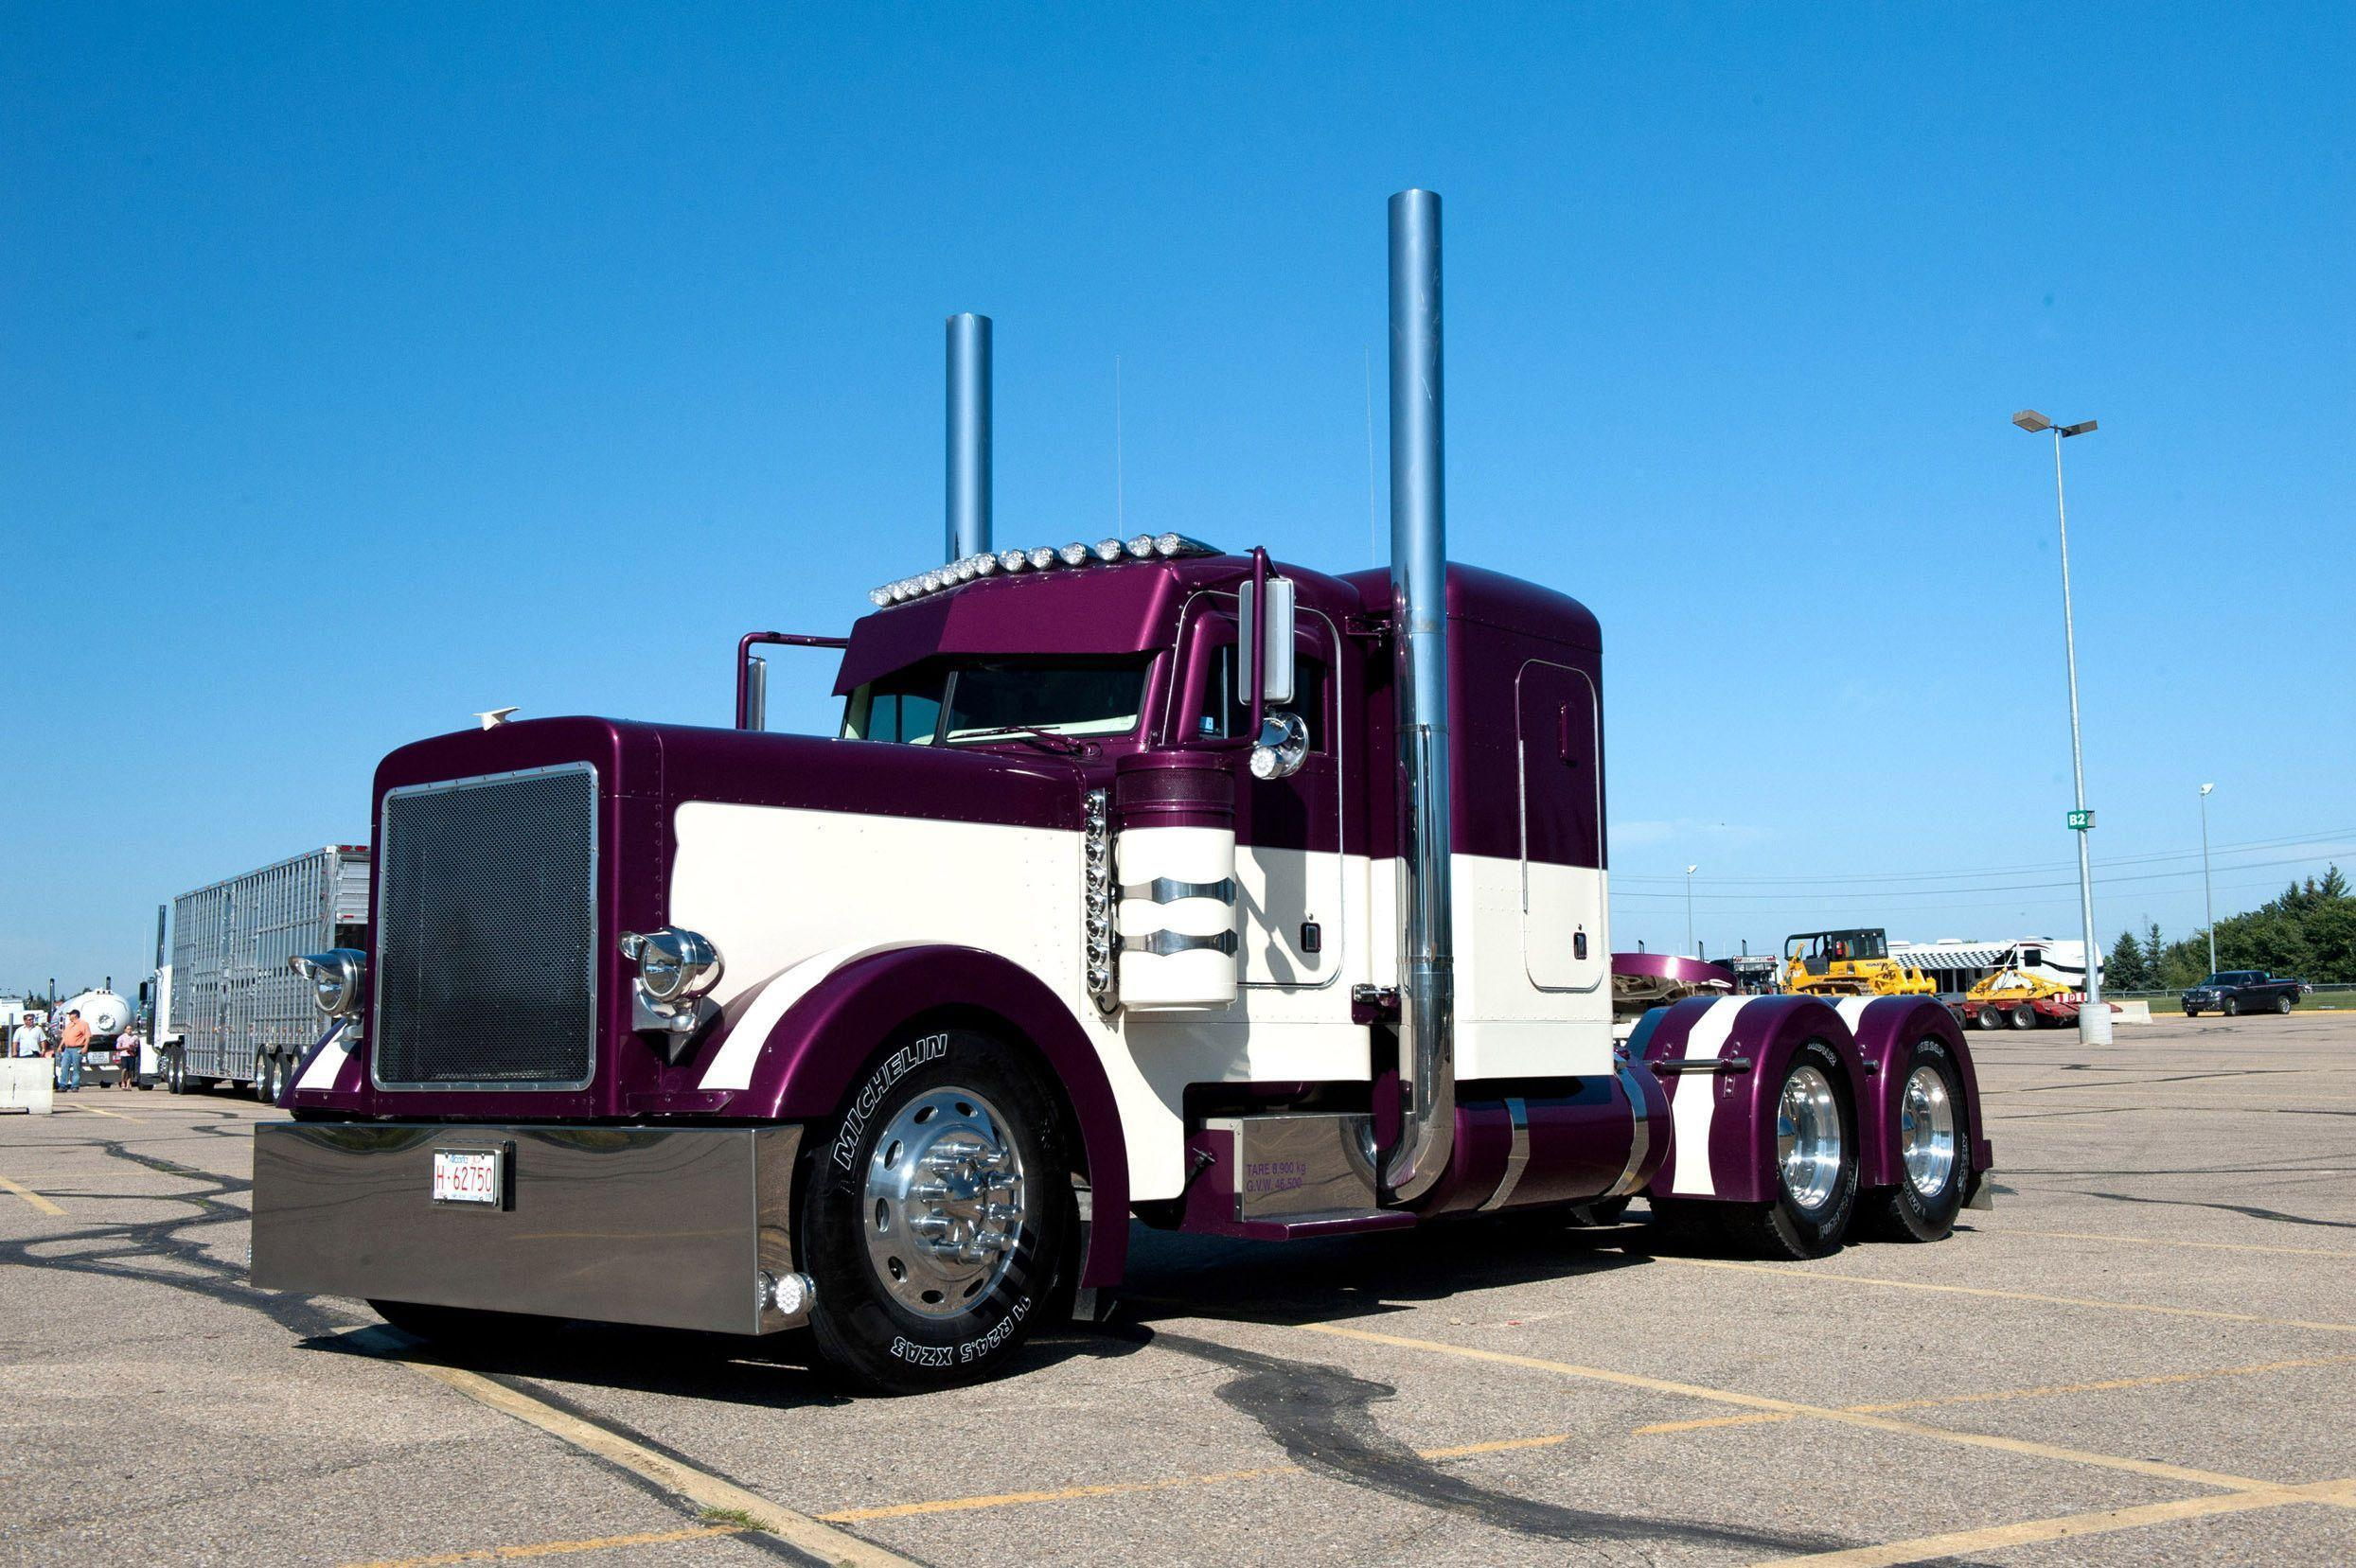 Peterbilt Trucks Wallpaper | typesofvehicles.